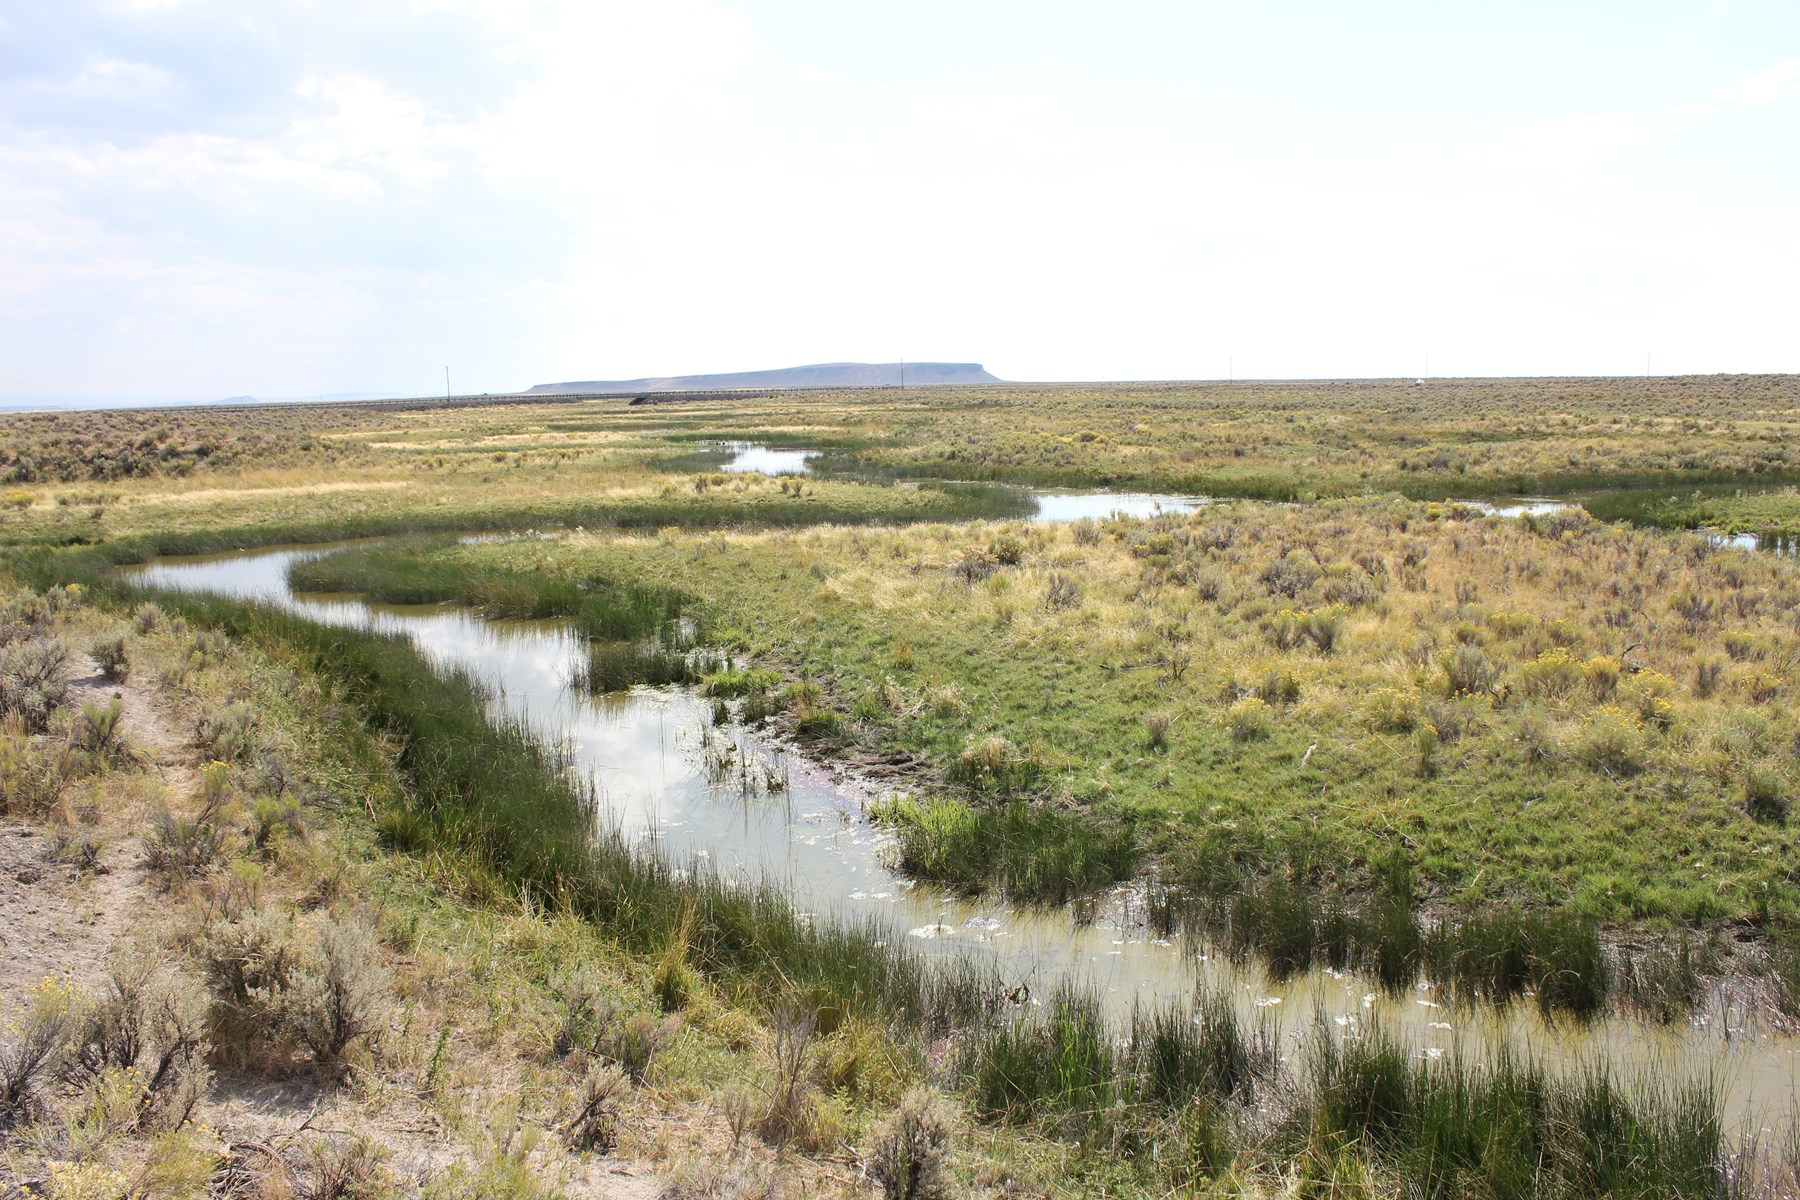 MALHEUR SLOUGH PROPERTY FOR SALE IN BURNS